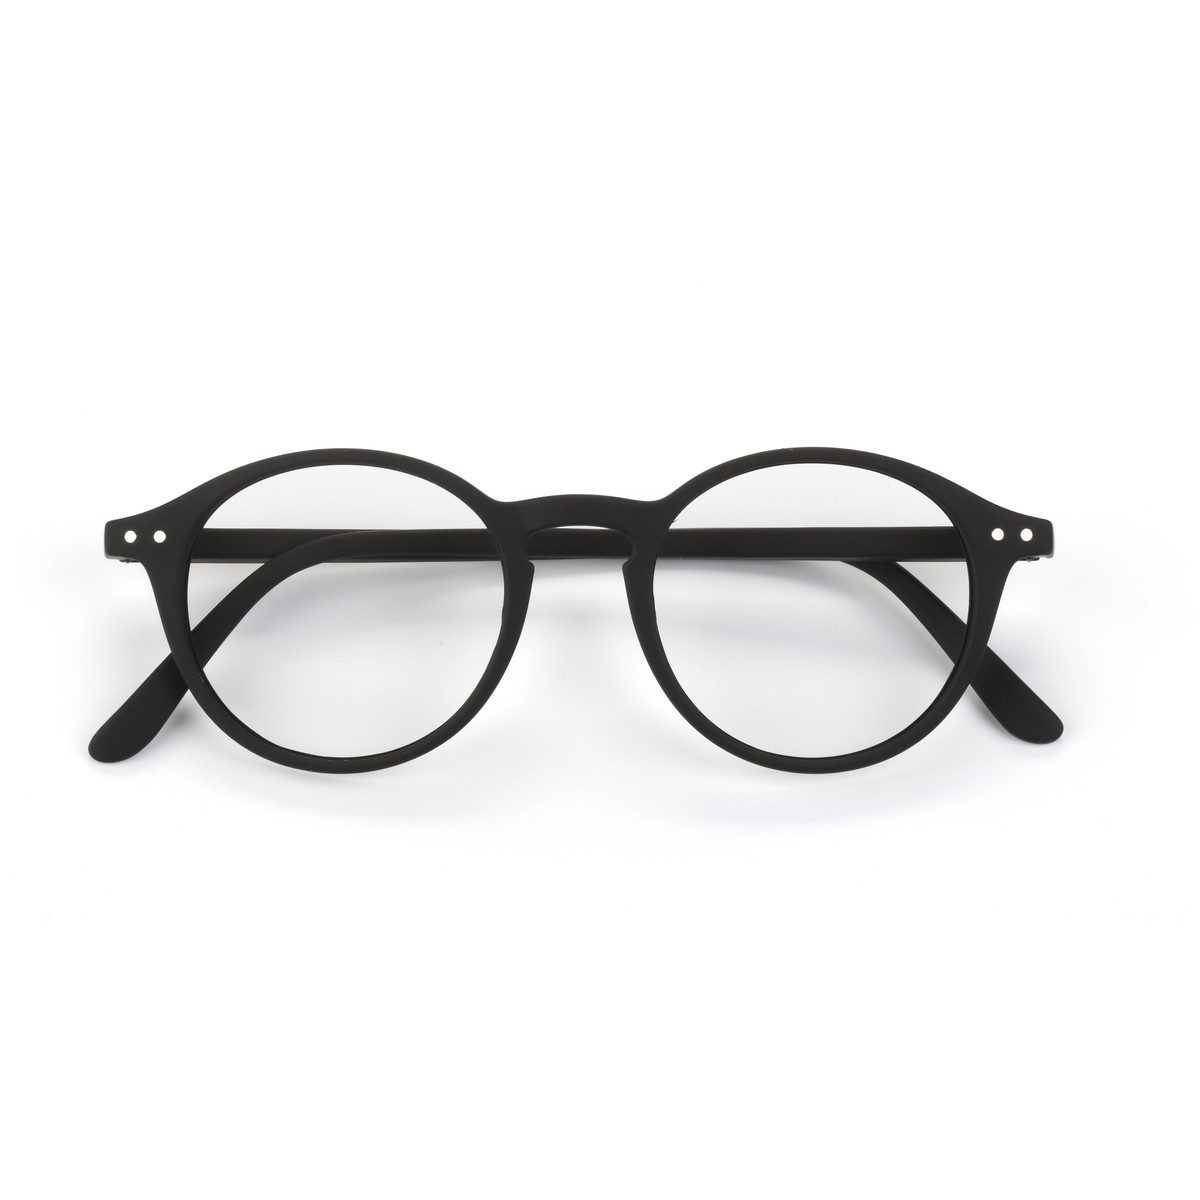 Izipizi new style reading glasses - black